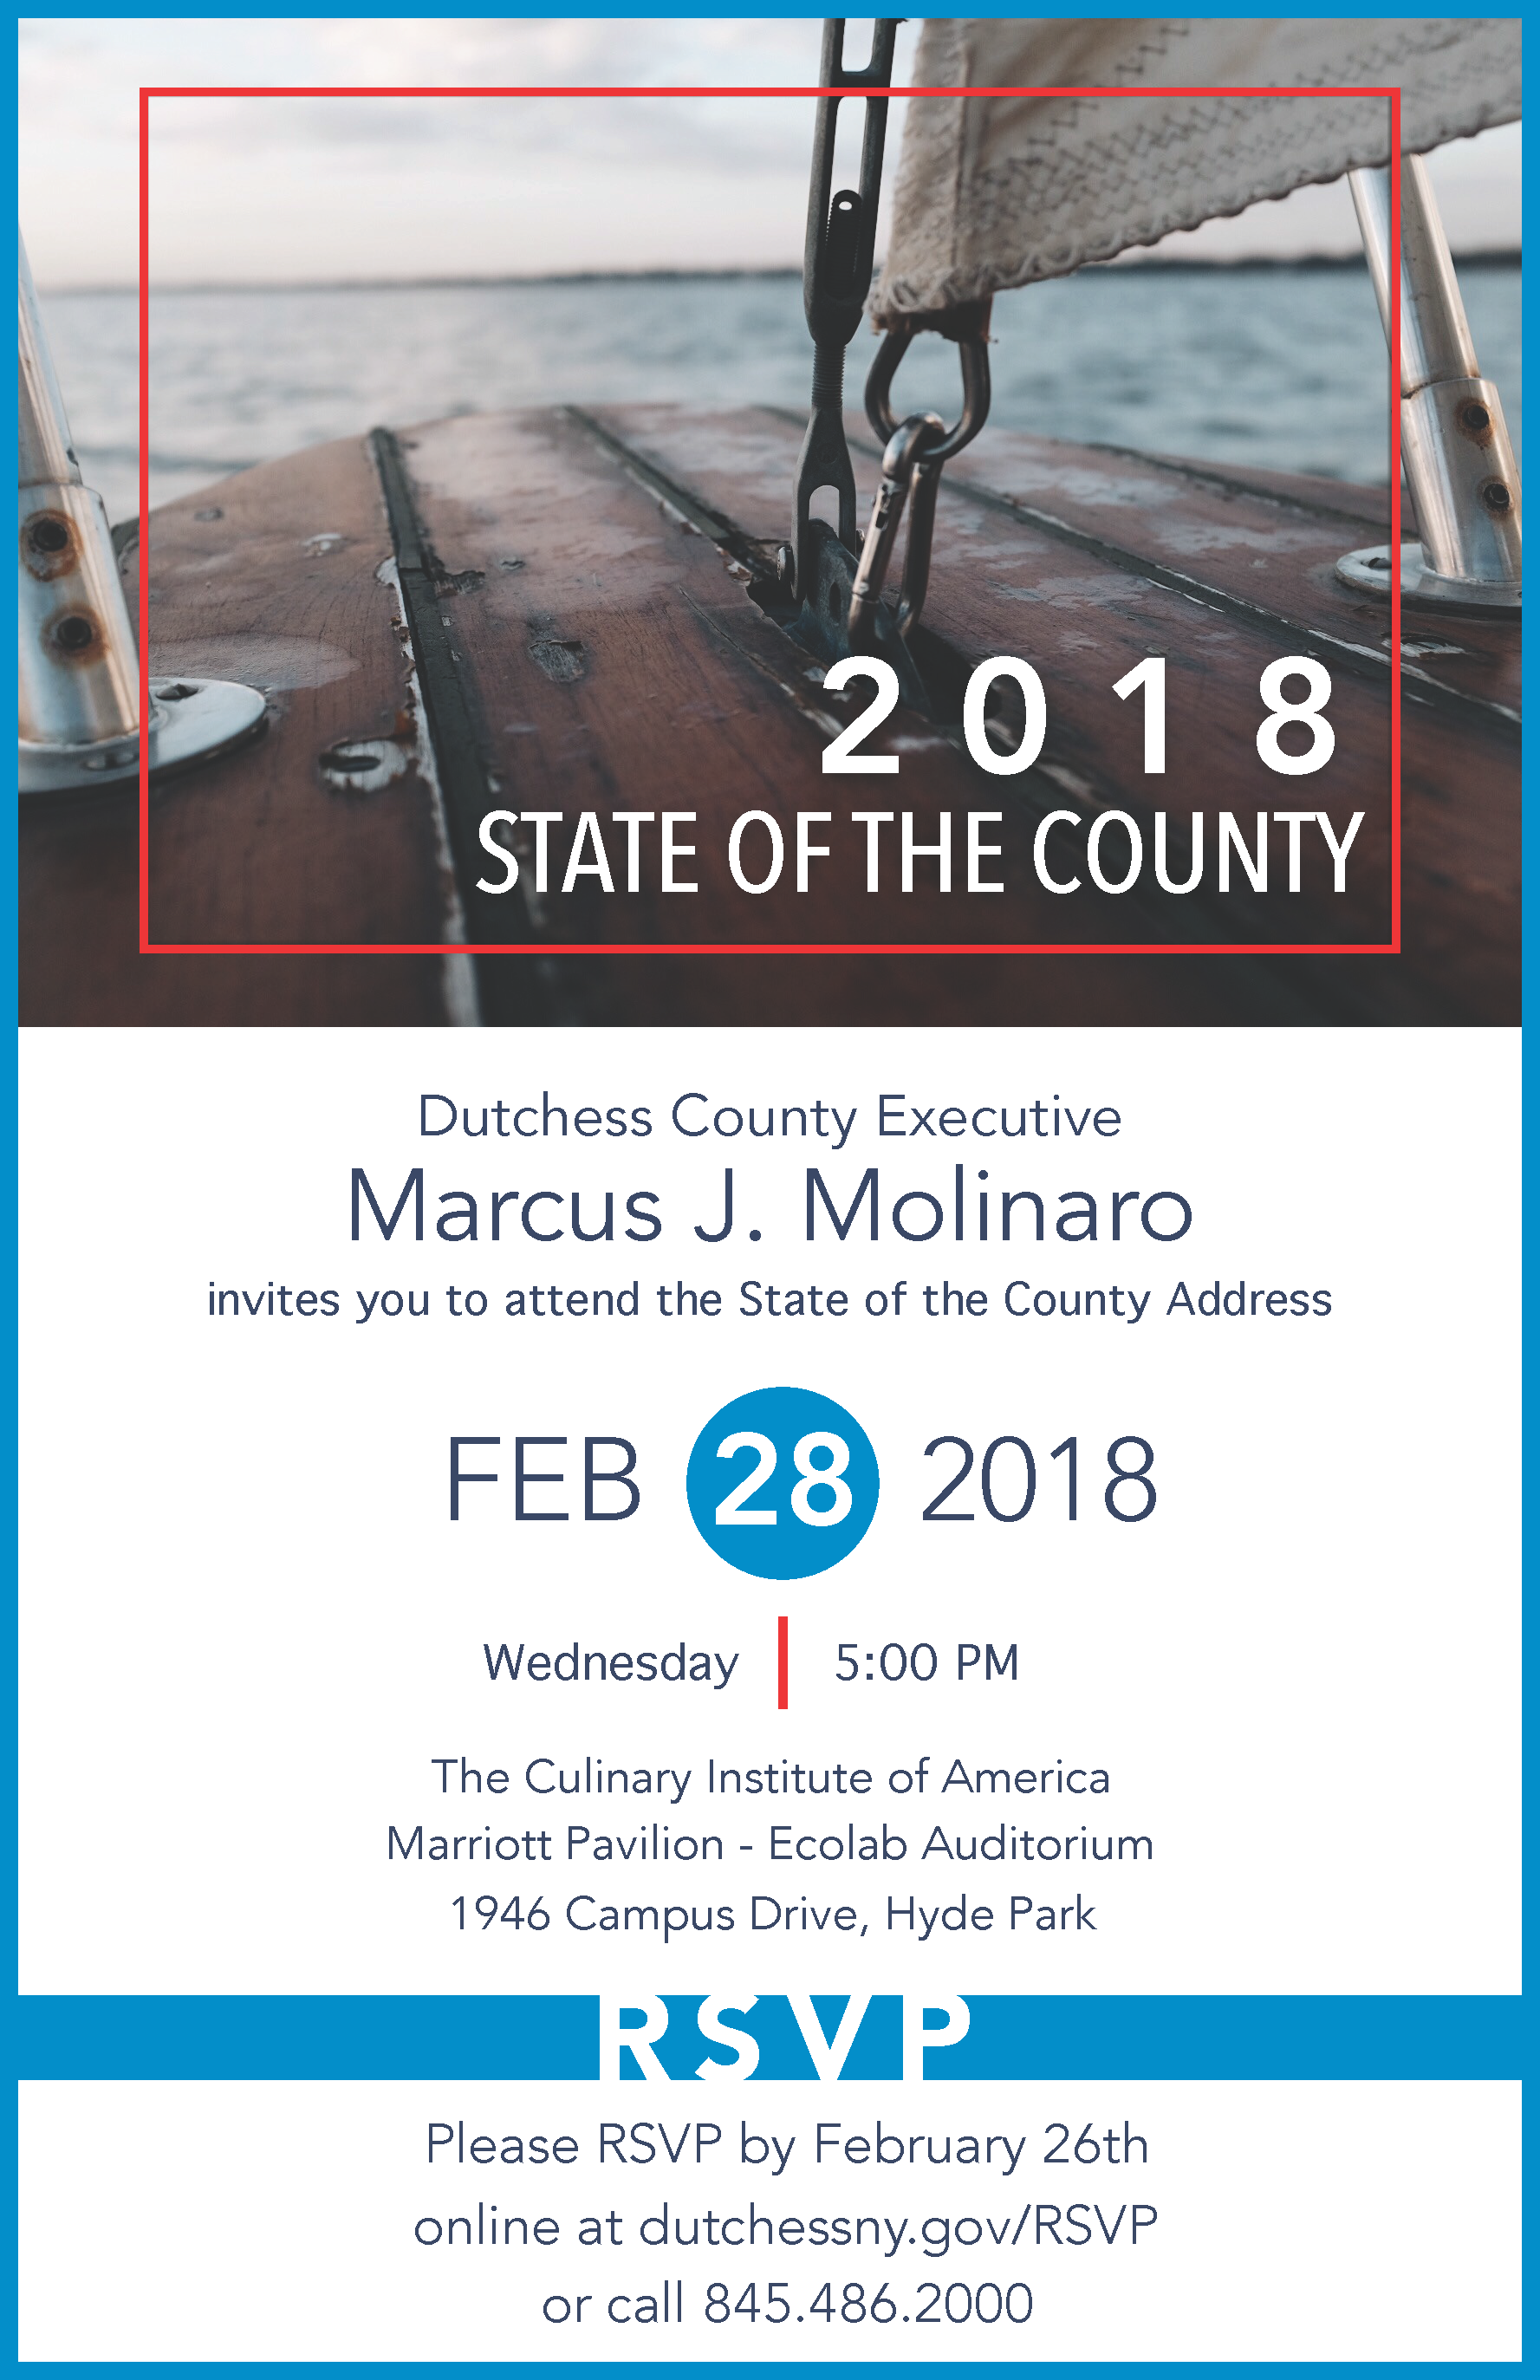 2018 State of the County Invitation Image.  Wednesday February 28th, 2018 at 5:00 PM at the Culinary Institute of America Marriot Pavilion - Ecolab Auditorium 1946 Campus Drive, Hyde Park.  RSVP by Feb. 26 at DutchessNY.gov/RSVP or call 845 486-2000